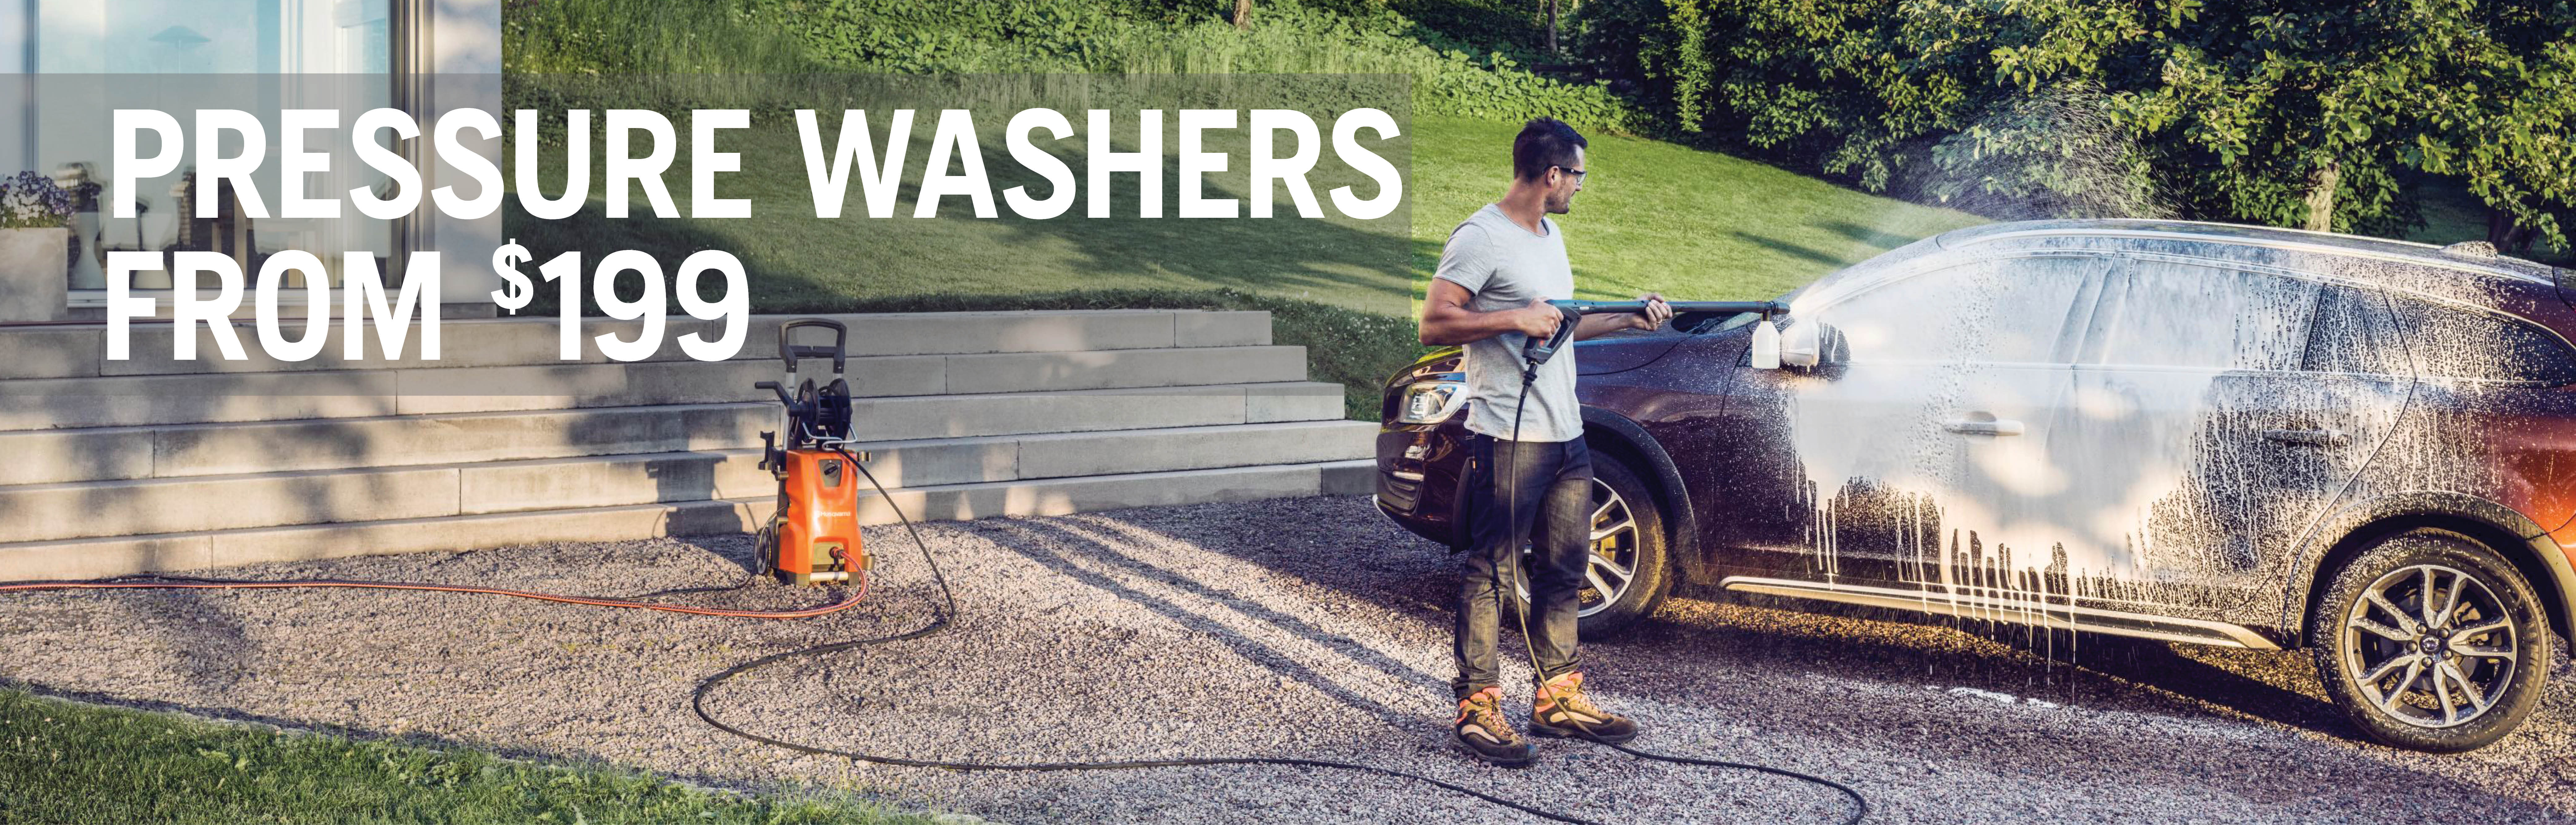 Spring 2020 - Pressure Washers